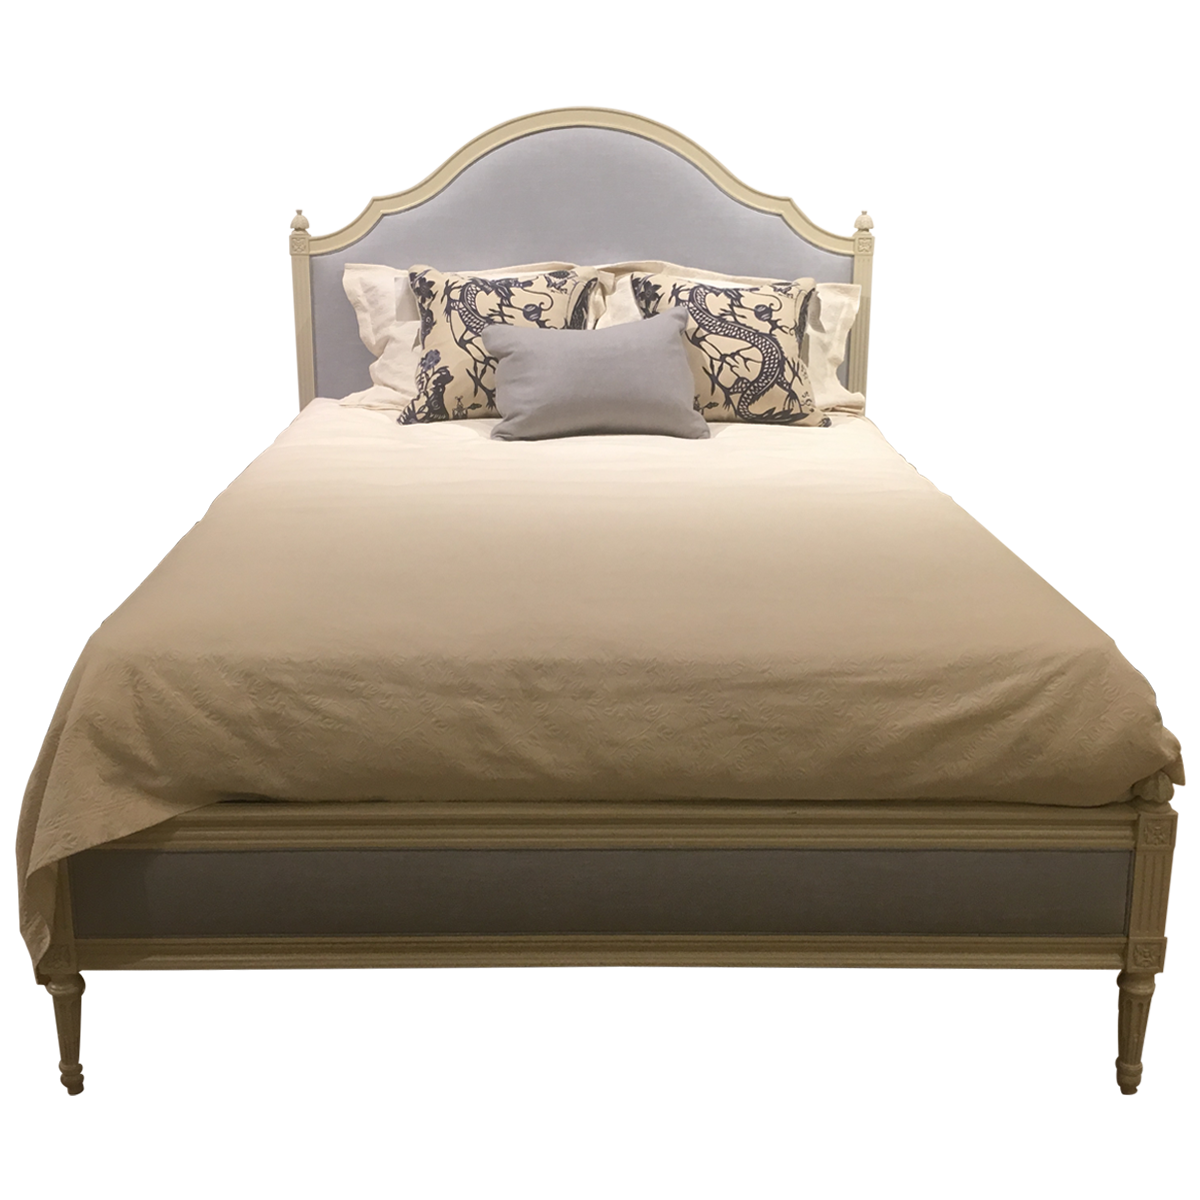 Bed HD PNG Transparent Bed HD.PNG Images..